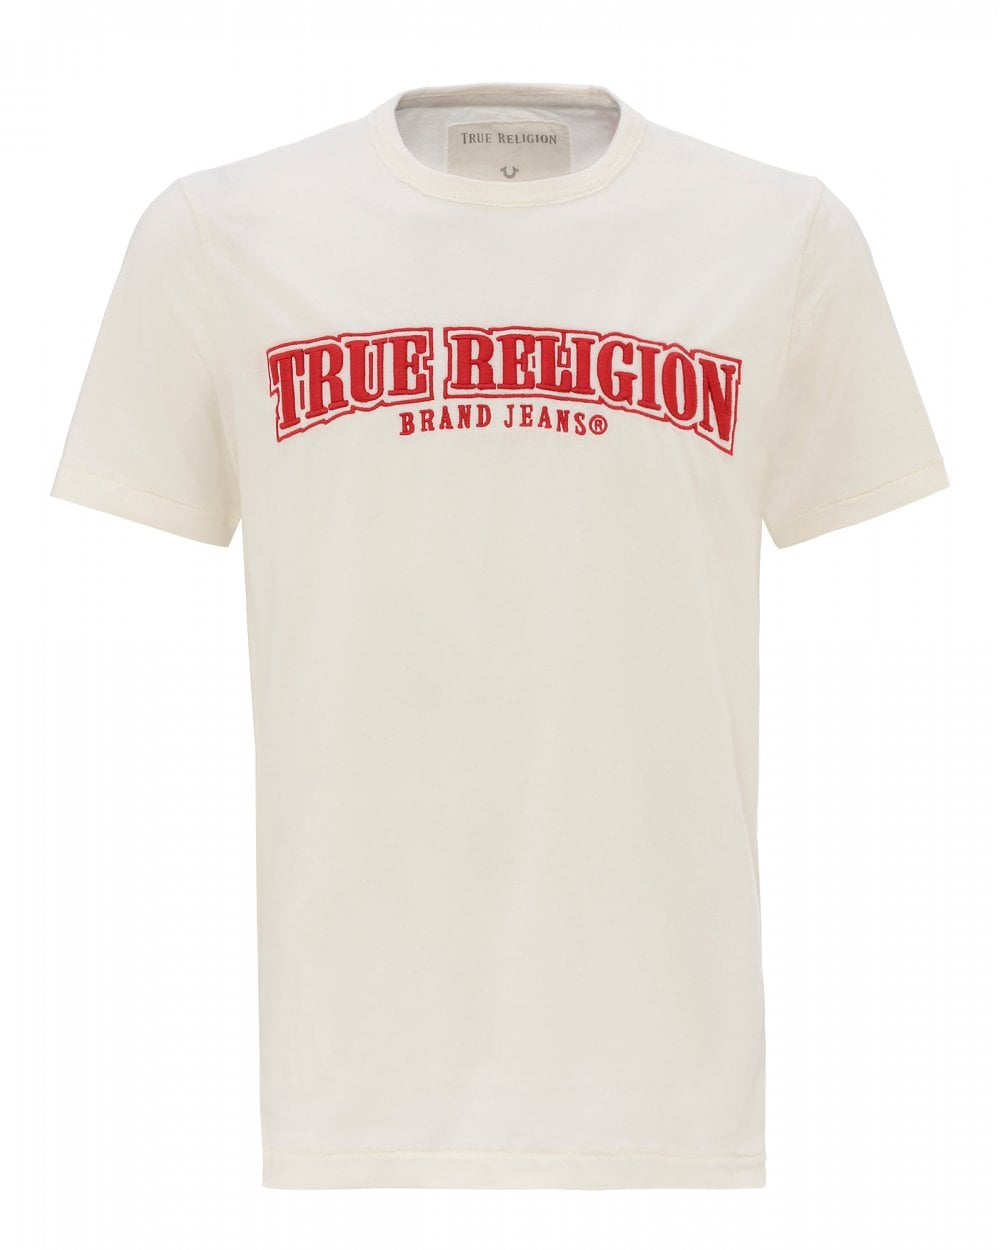 2cb7b987 True Religion Mens Embroidered Logo T-Shirt, White Tee